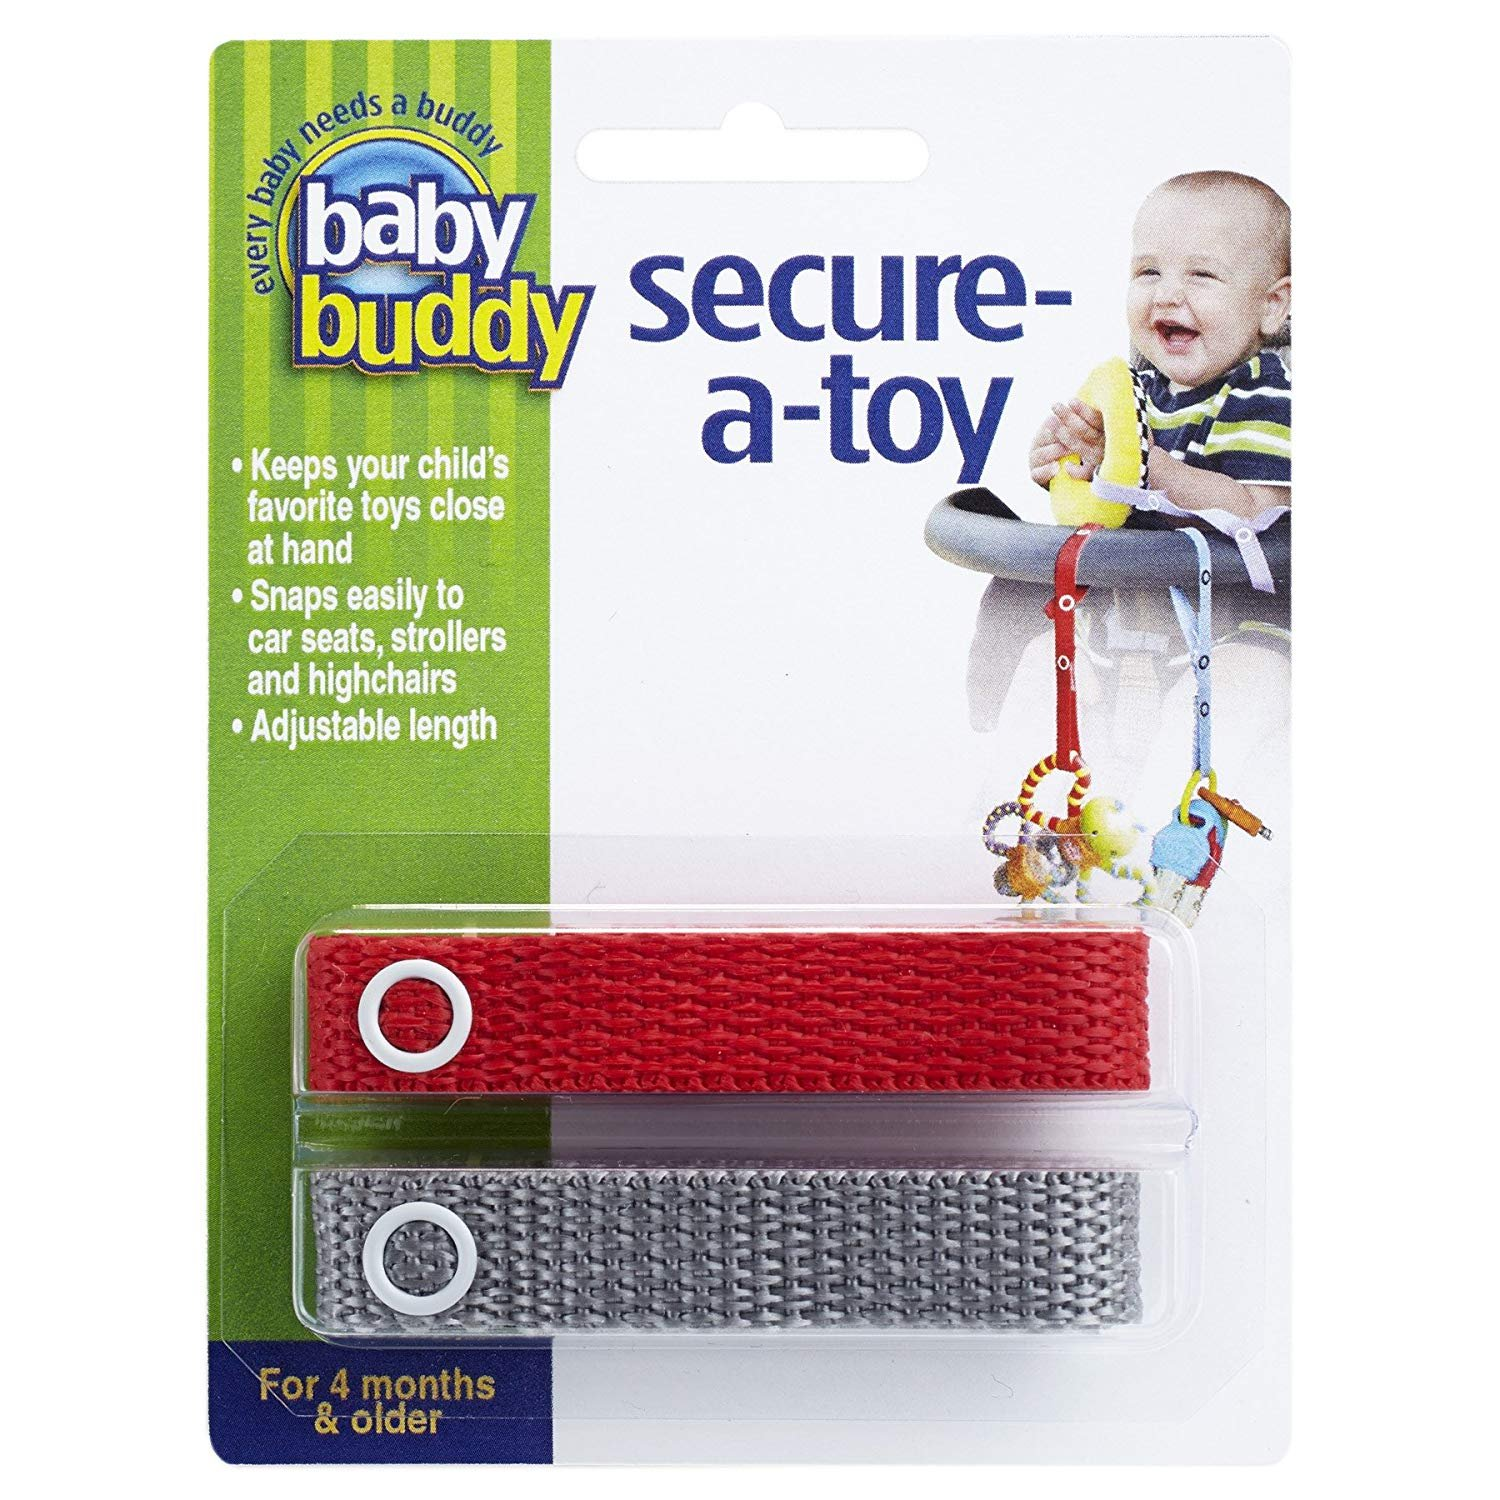 Baby Buddy 2-Count Secure-A-Toy, Tan/Olive, 2-Pack Compac Industries 00147TnOv-24